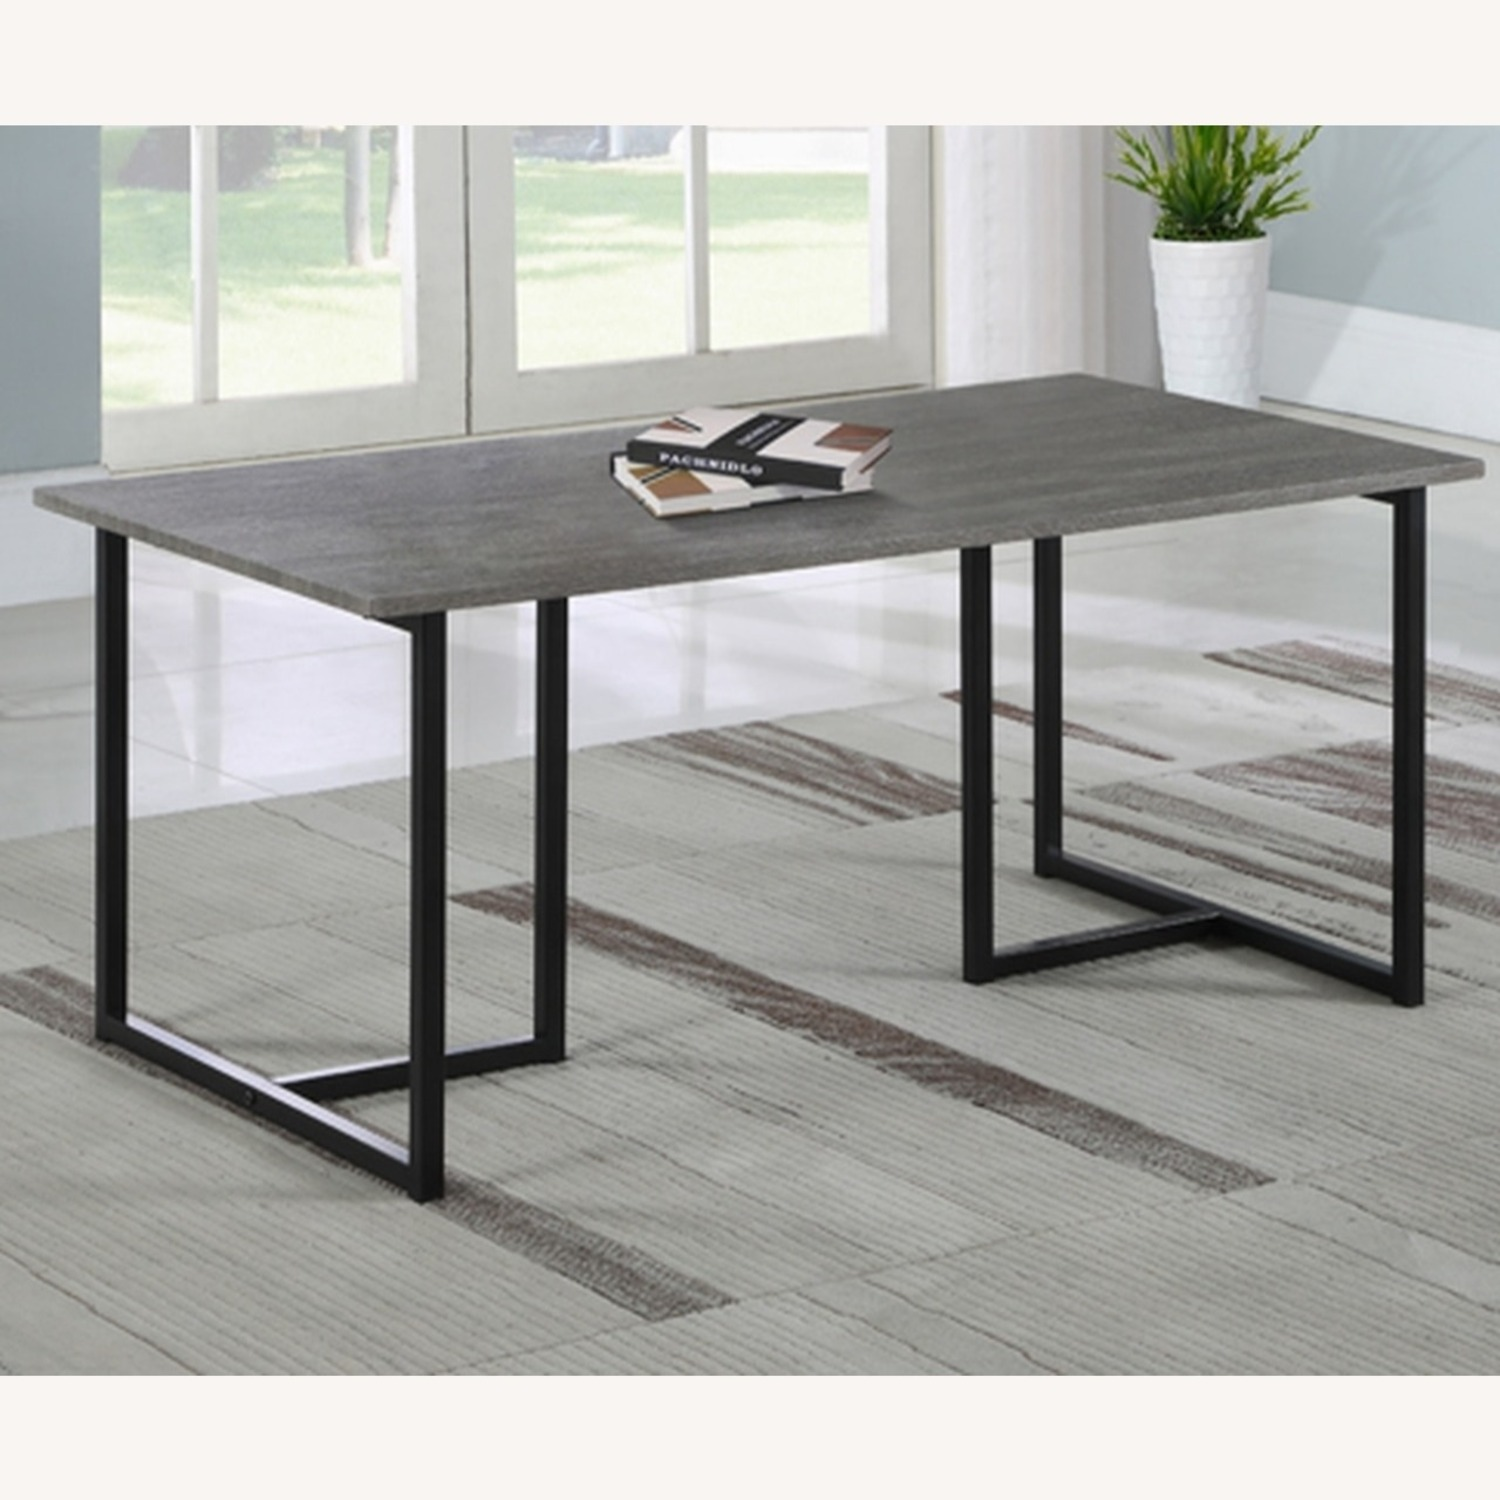 3-Piece Occasional Set In Grey And Black Finish - image-2